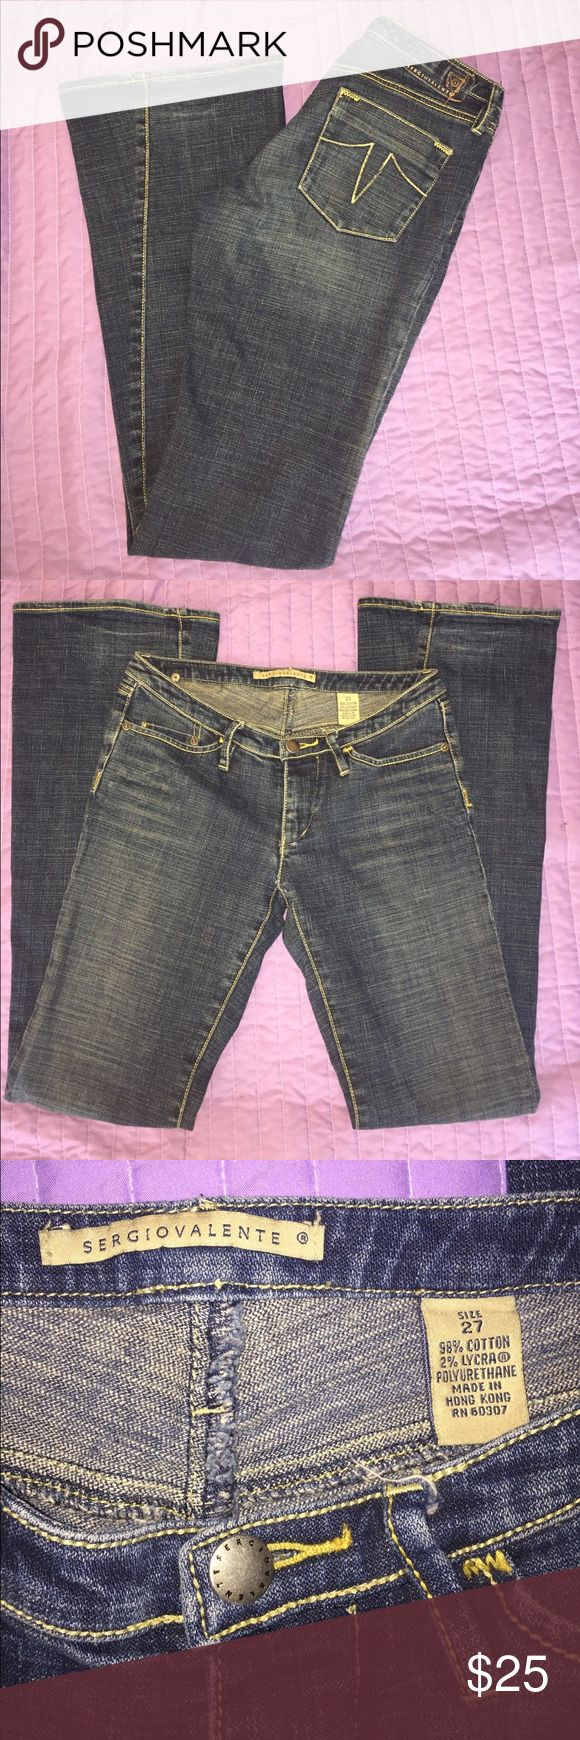 Sergio Valente Jeans Size 27 This is a pair of Sergio Valente jeans. They are blue with a flare legs and are in good pre-owned condition. Sergio Valente Jeans Flare & Wide Leg